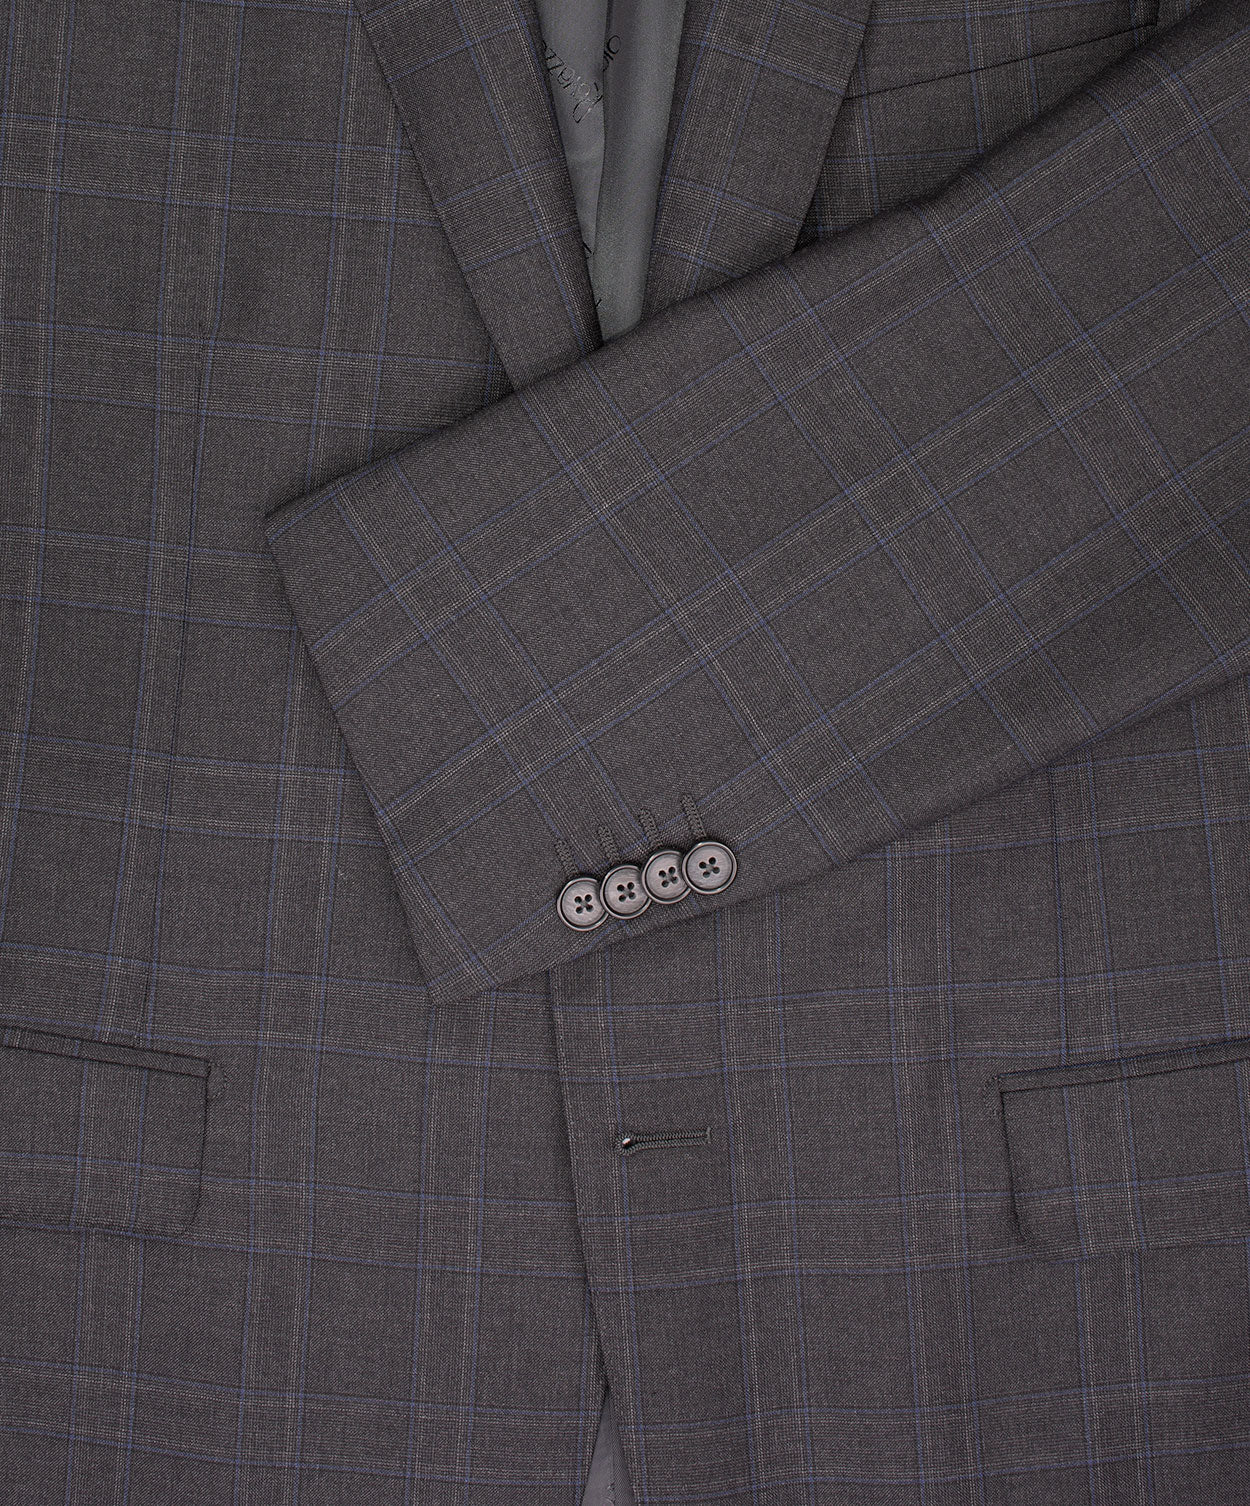 Dark Grey/Blue Sohpisticated Check Suit